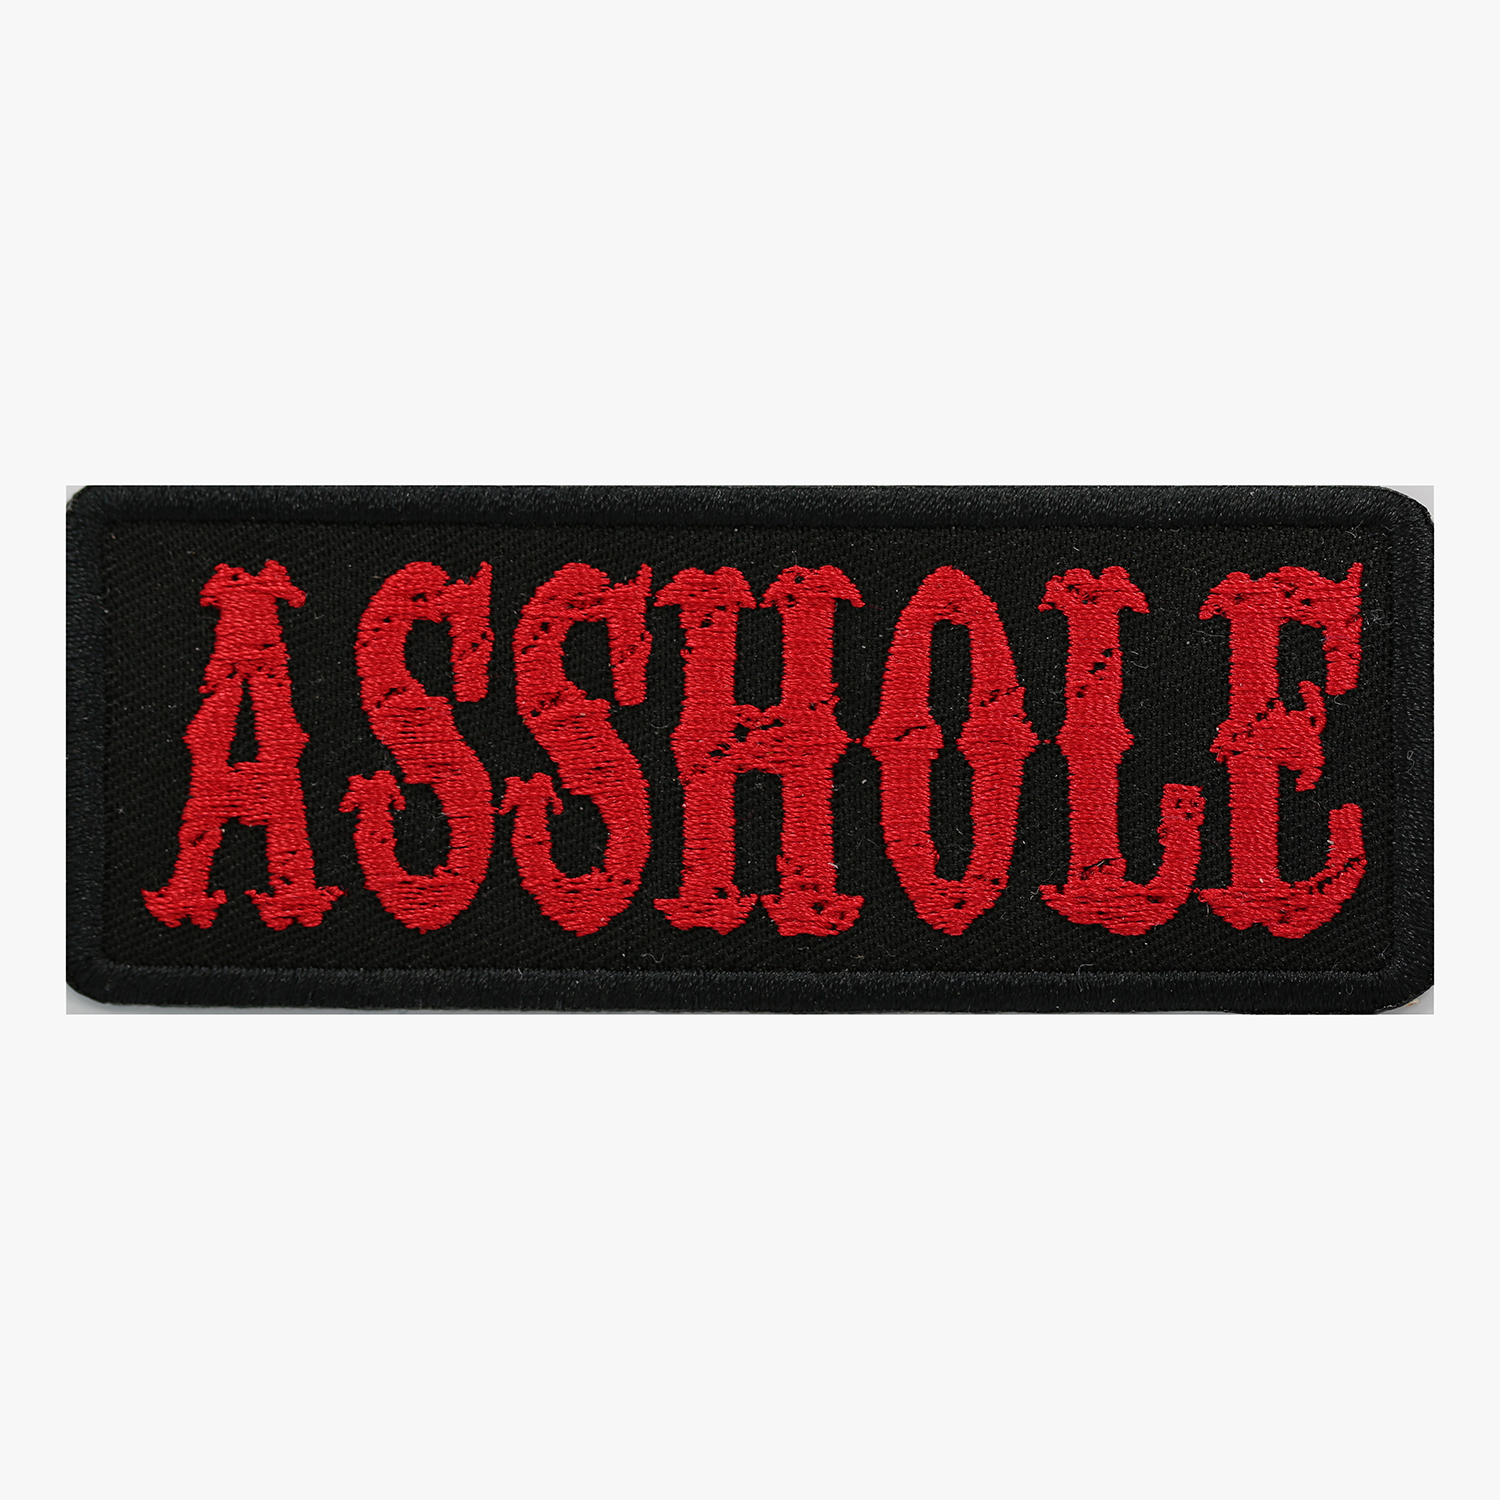 Asshole Embroidered Biker Leather Vest Patch